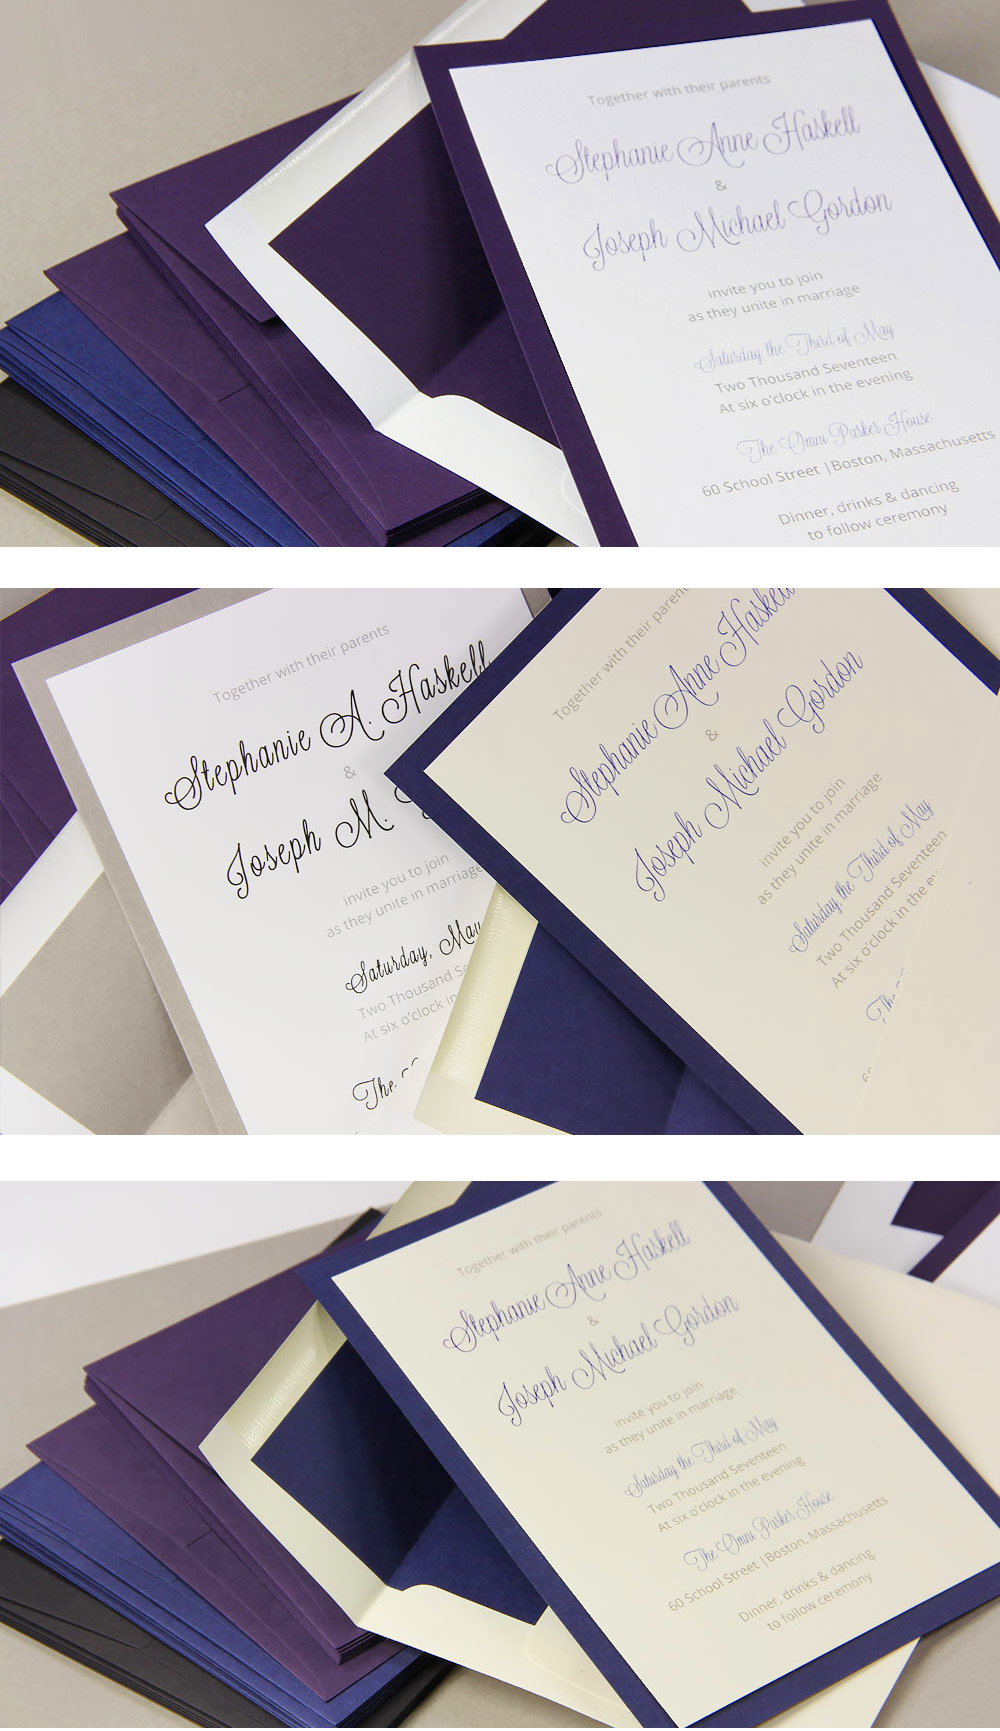 Layered 5 x 7 wedding invitations with matching lined envelopes